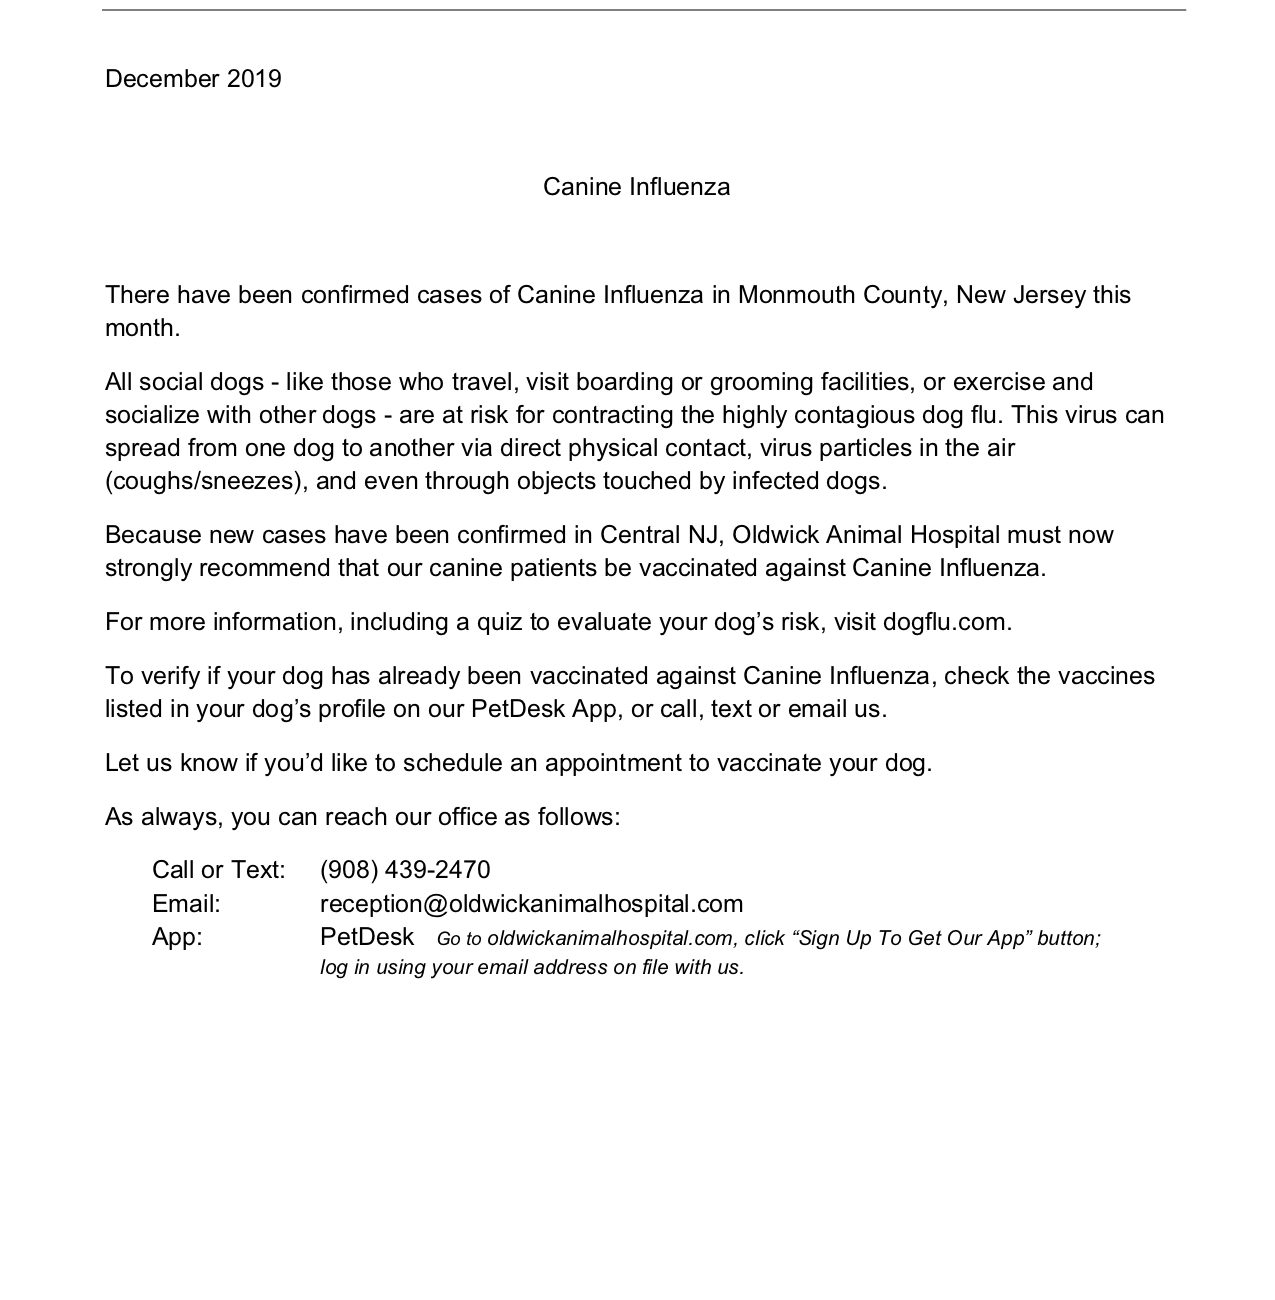 Canine Influenza Letter